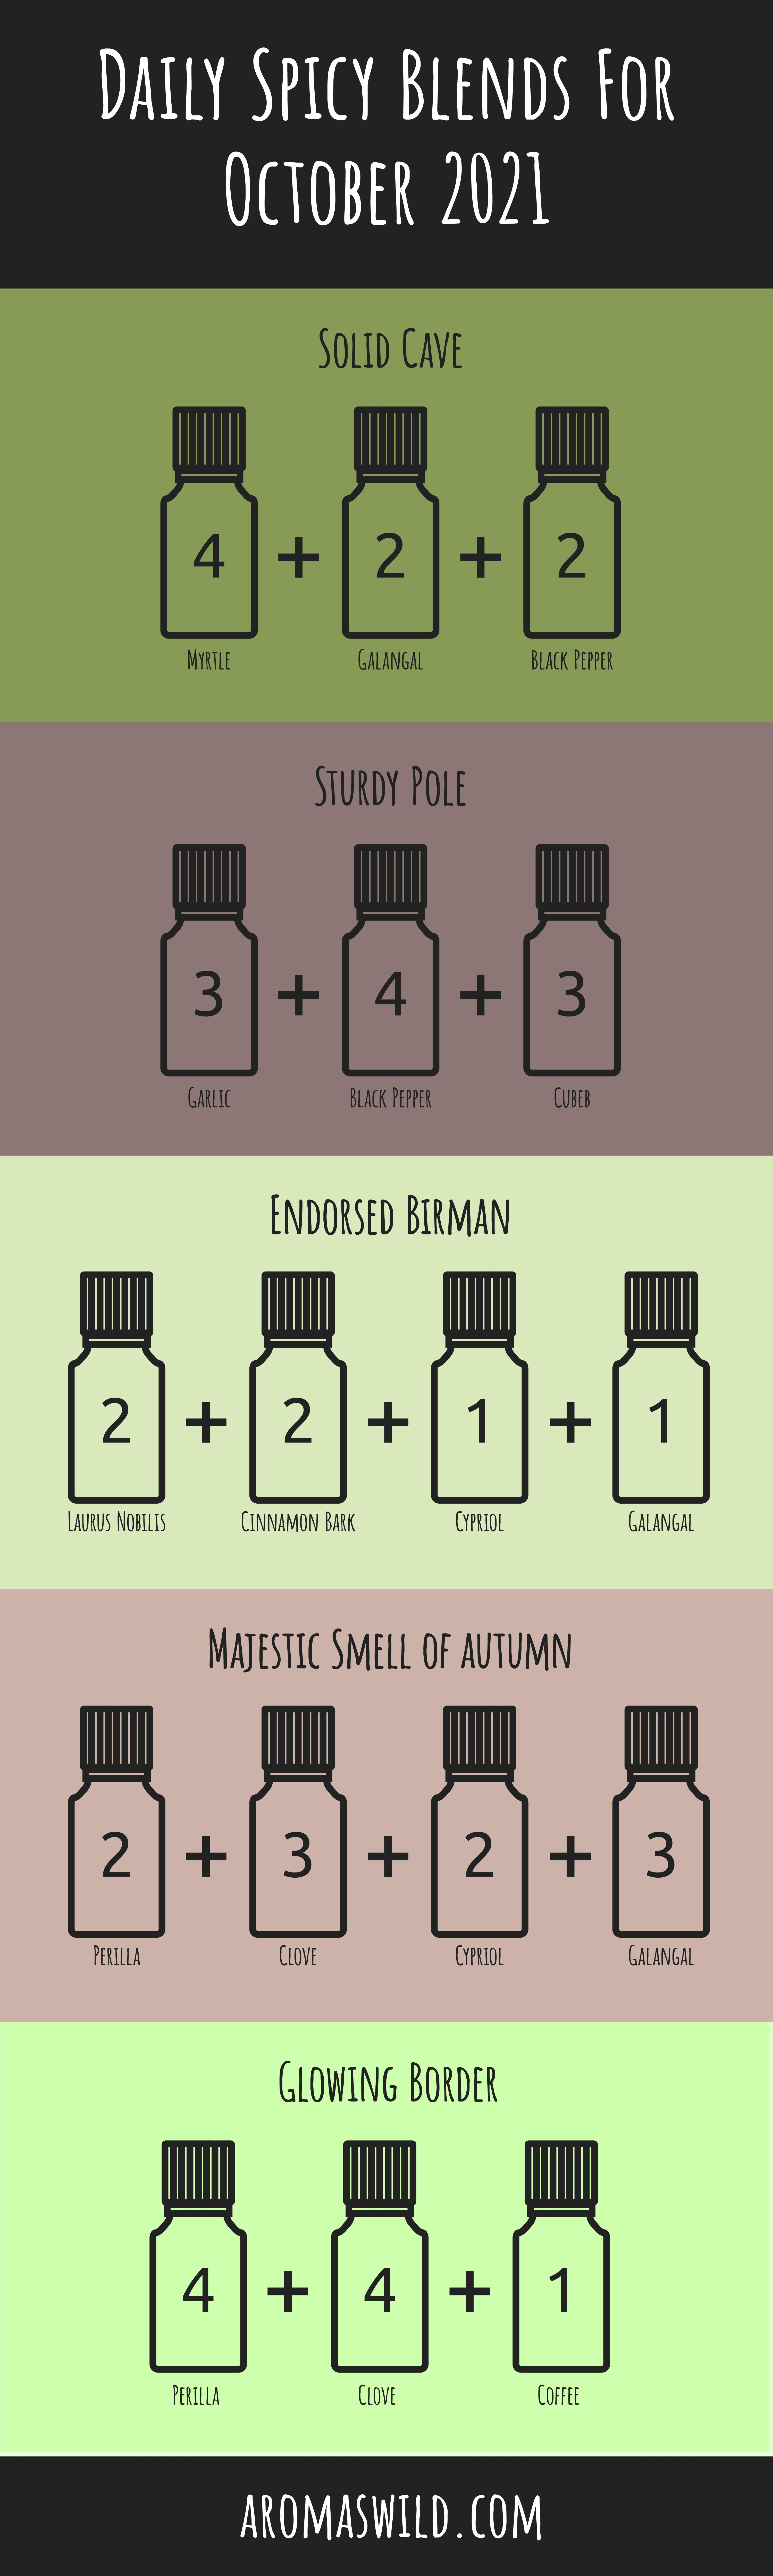 Top Zesty Essential Oils – Daily Spicy Blends For March 20 October 2021